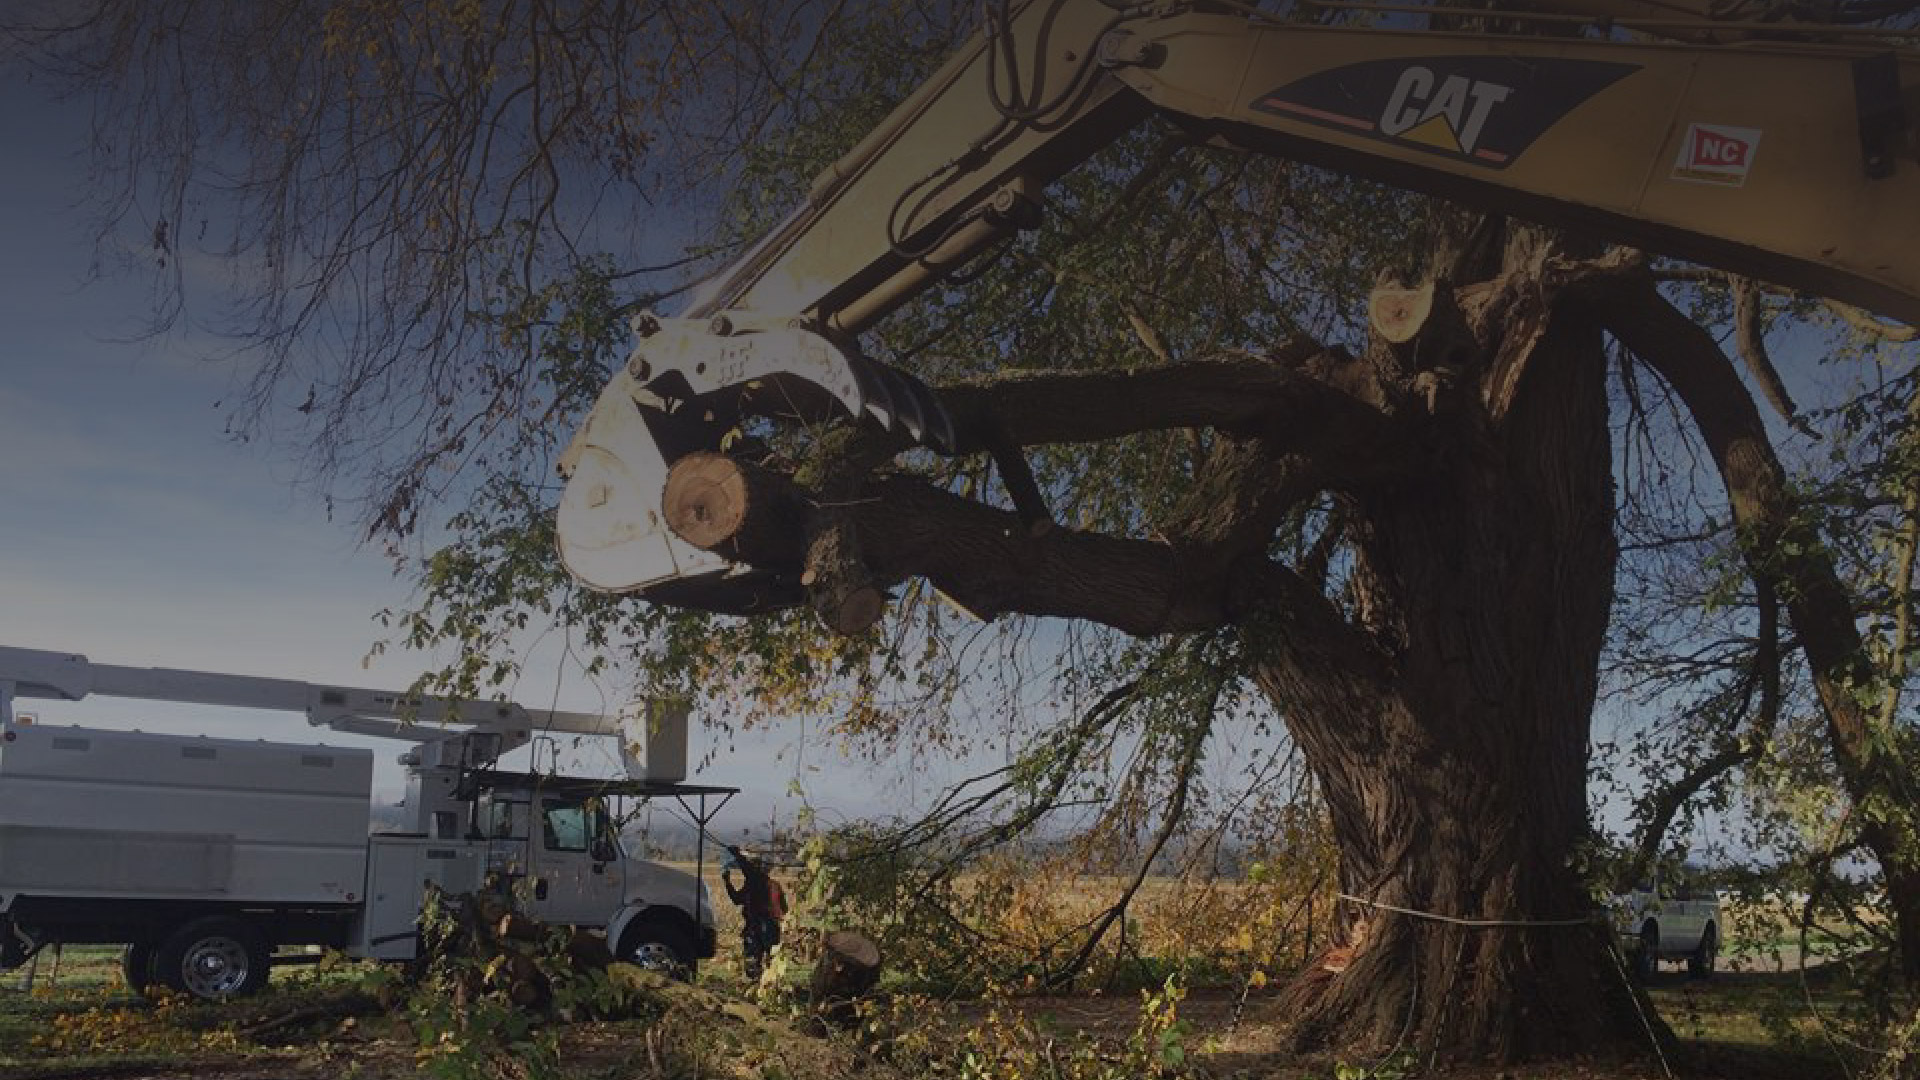 Tree Services Puget Sound